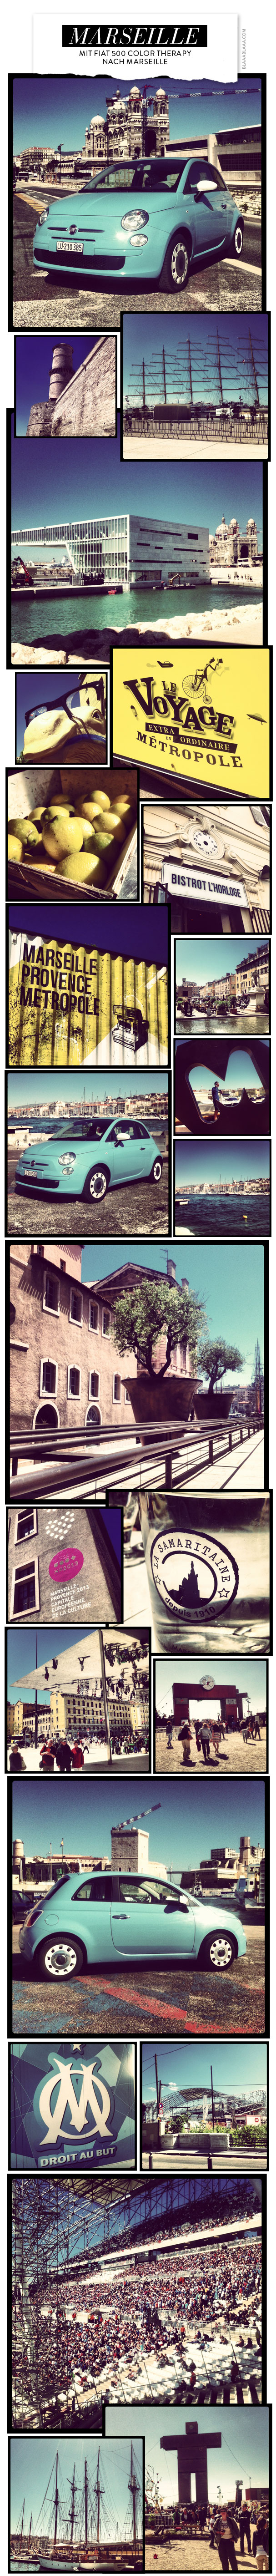 Mit Fiat 500 Color Therapy nach Marseille